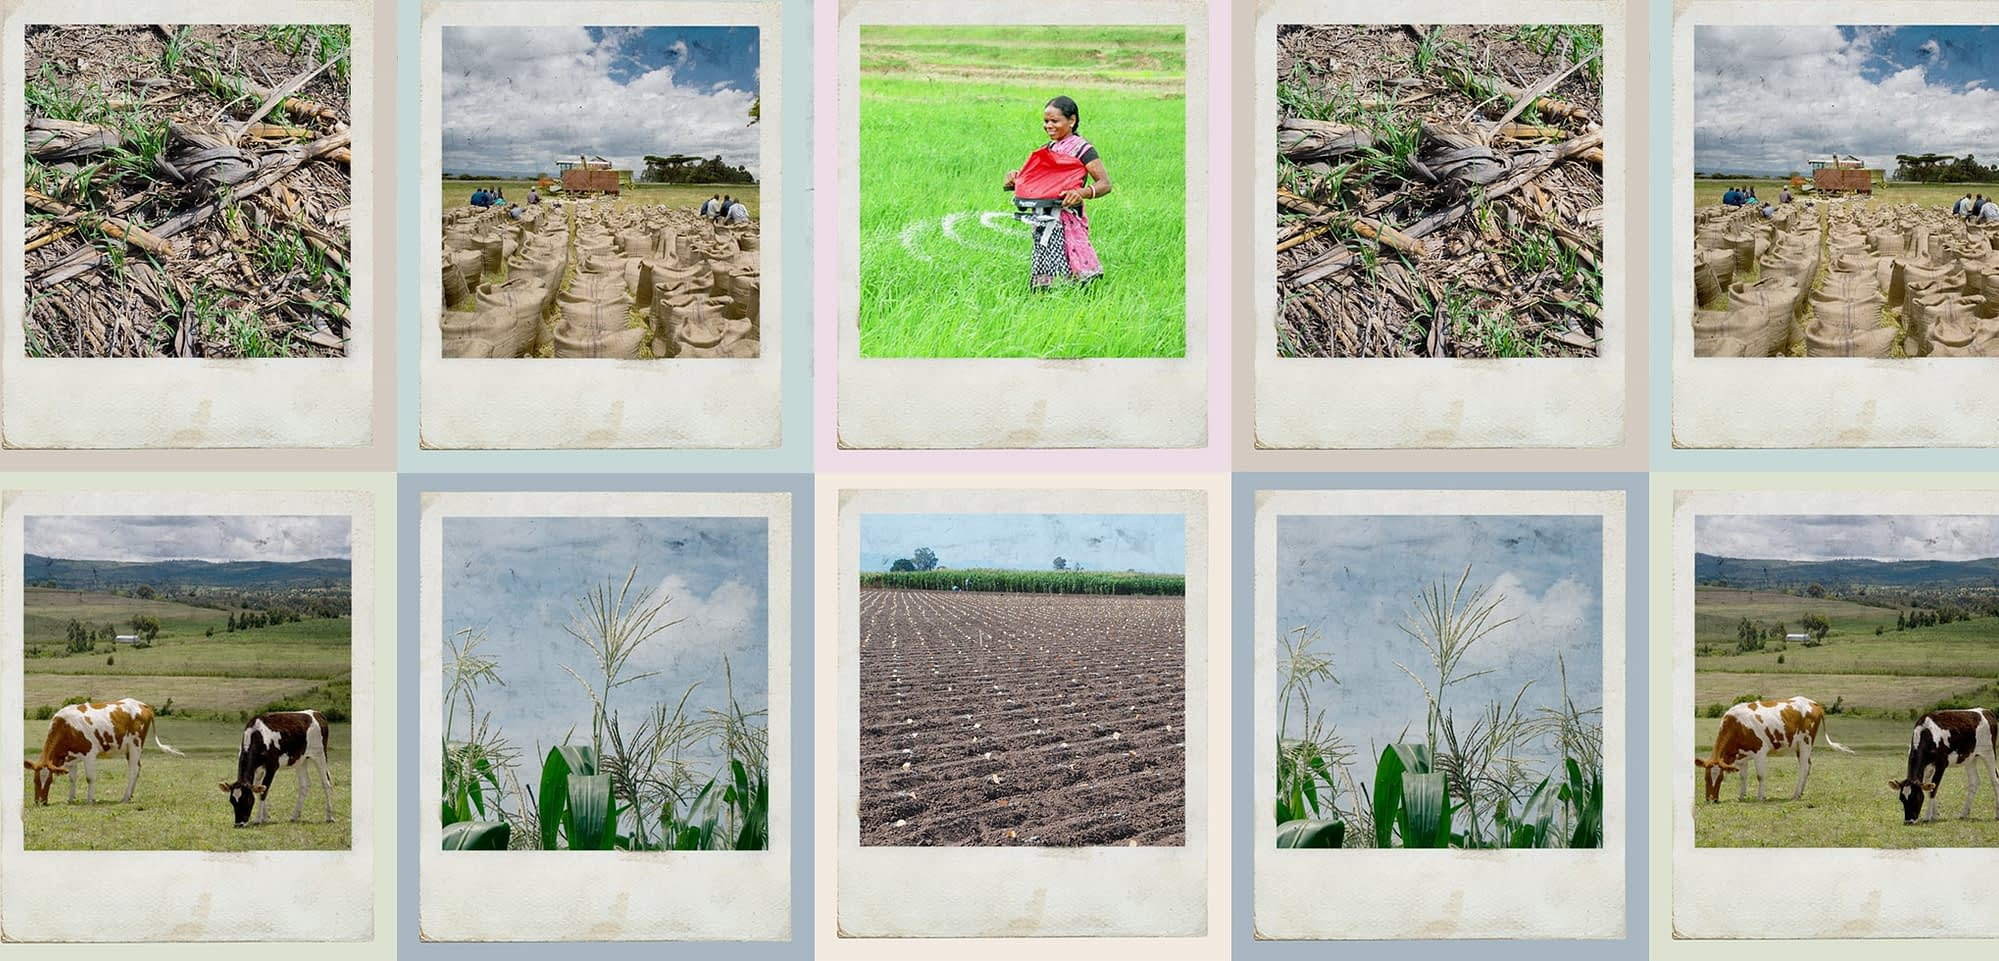 A collage of shows images relating to different stages of the nitrogen cycle. (Graphic: Alfonso Cortés/CIMMYT)